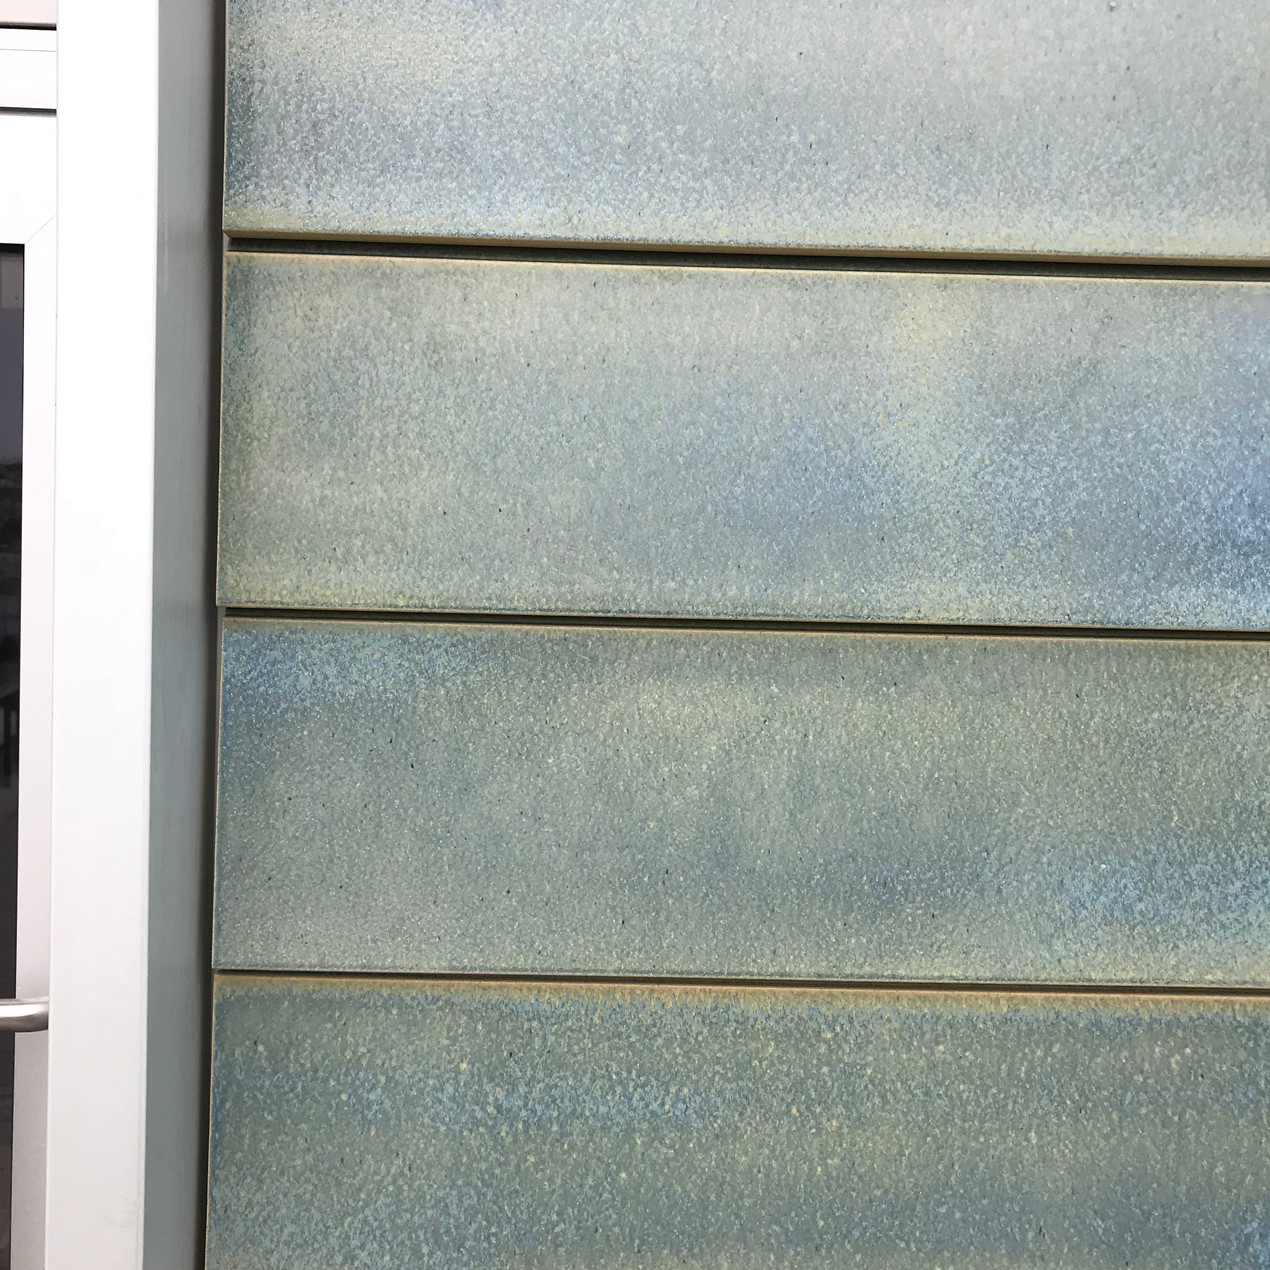 Ceramic tile cladding in blue and green (reflecting the colours of the sea at Porthmeor beach) on the recently opened extension to the Tate St Ives.